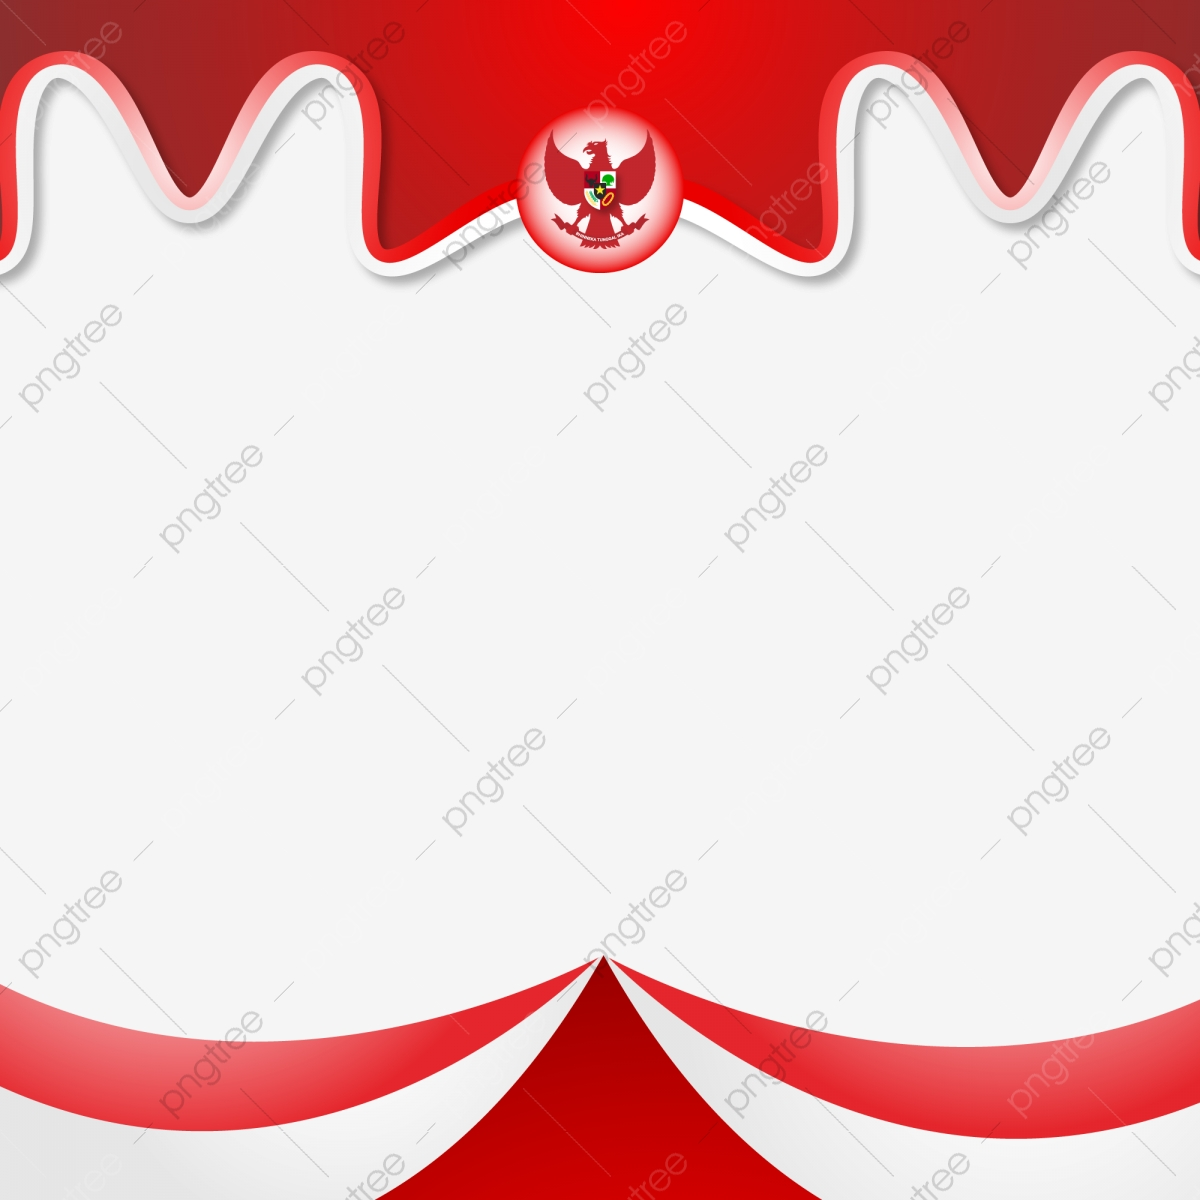 china flag png images vector and psd files free download on pngtree https pngtree com freepng indonesia independence day with flag frame design 5490174 html